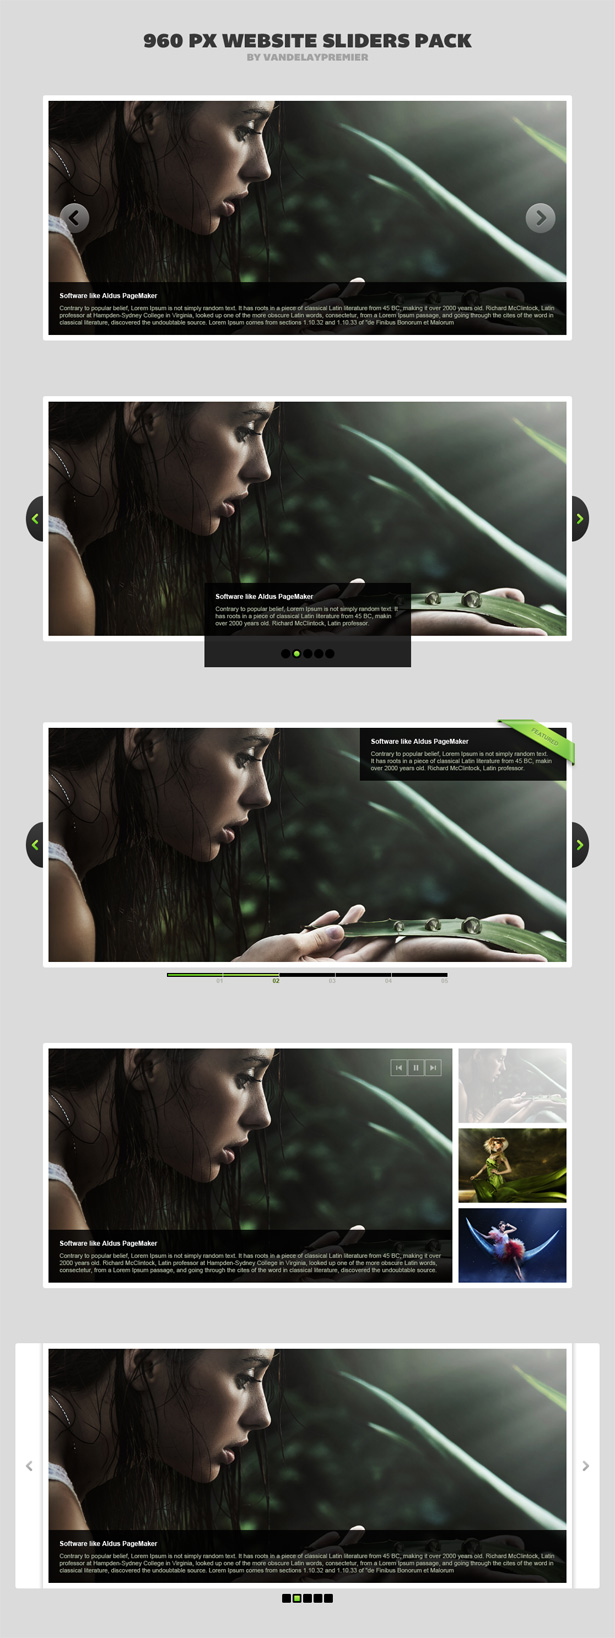 Web Sliders PSD